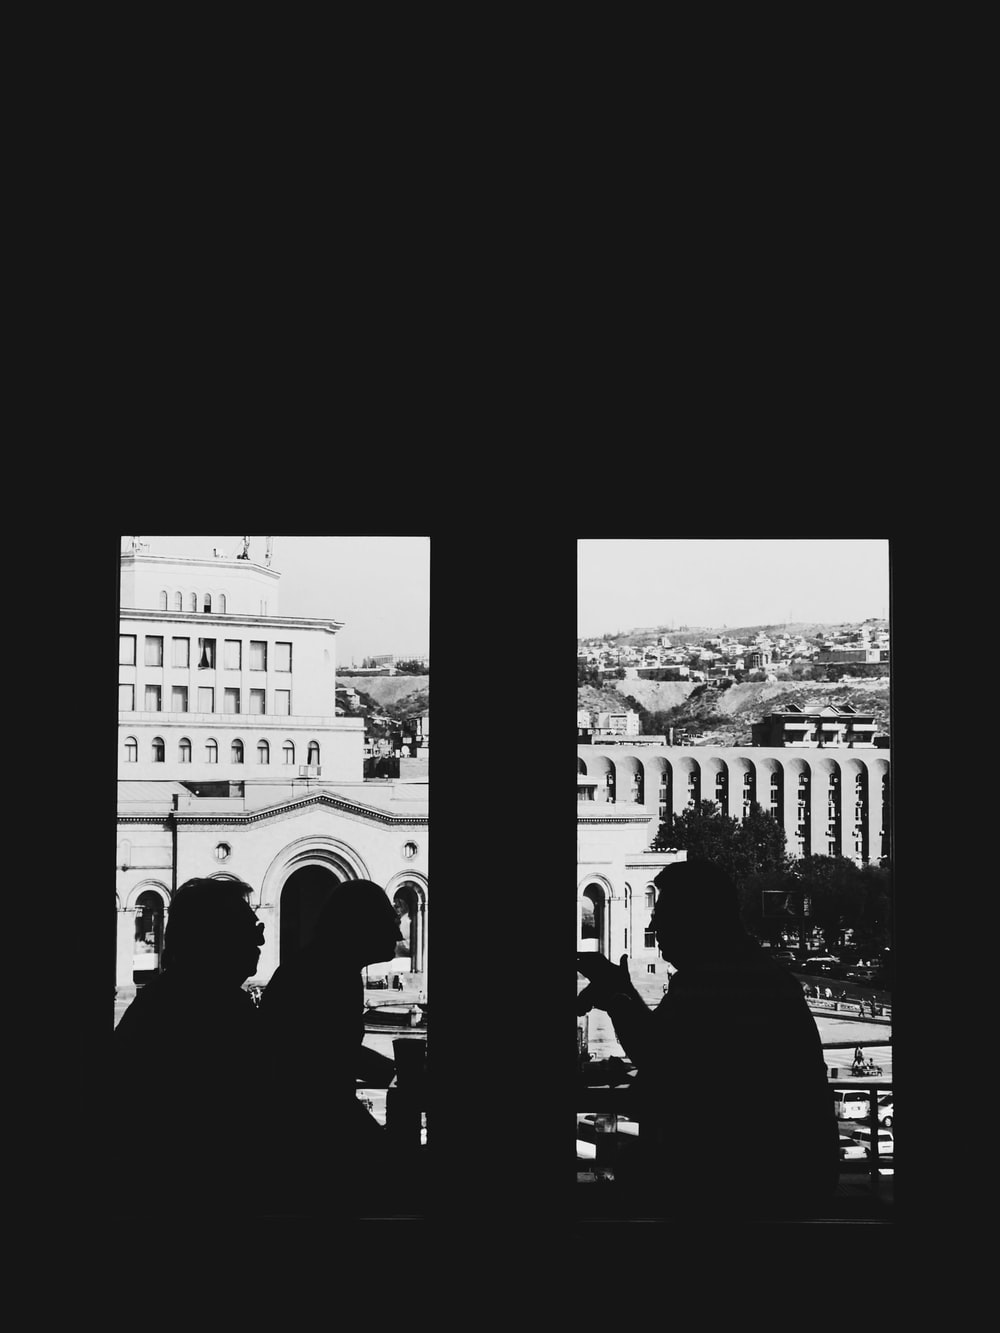 silhouette of people inside building